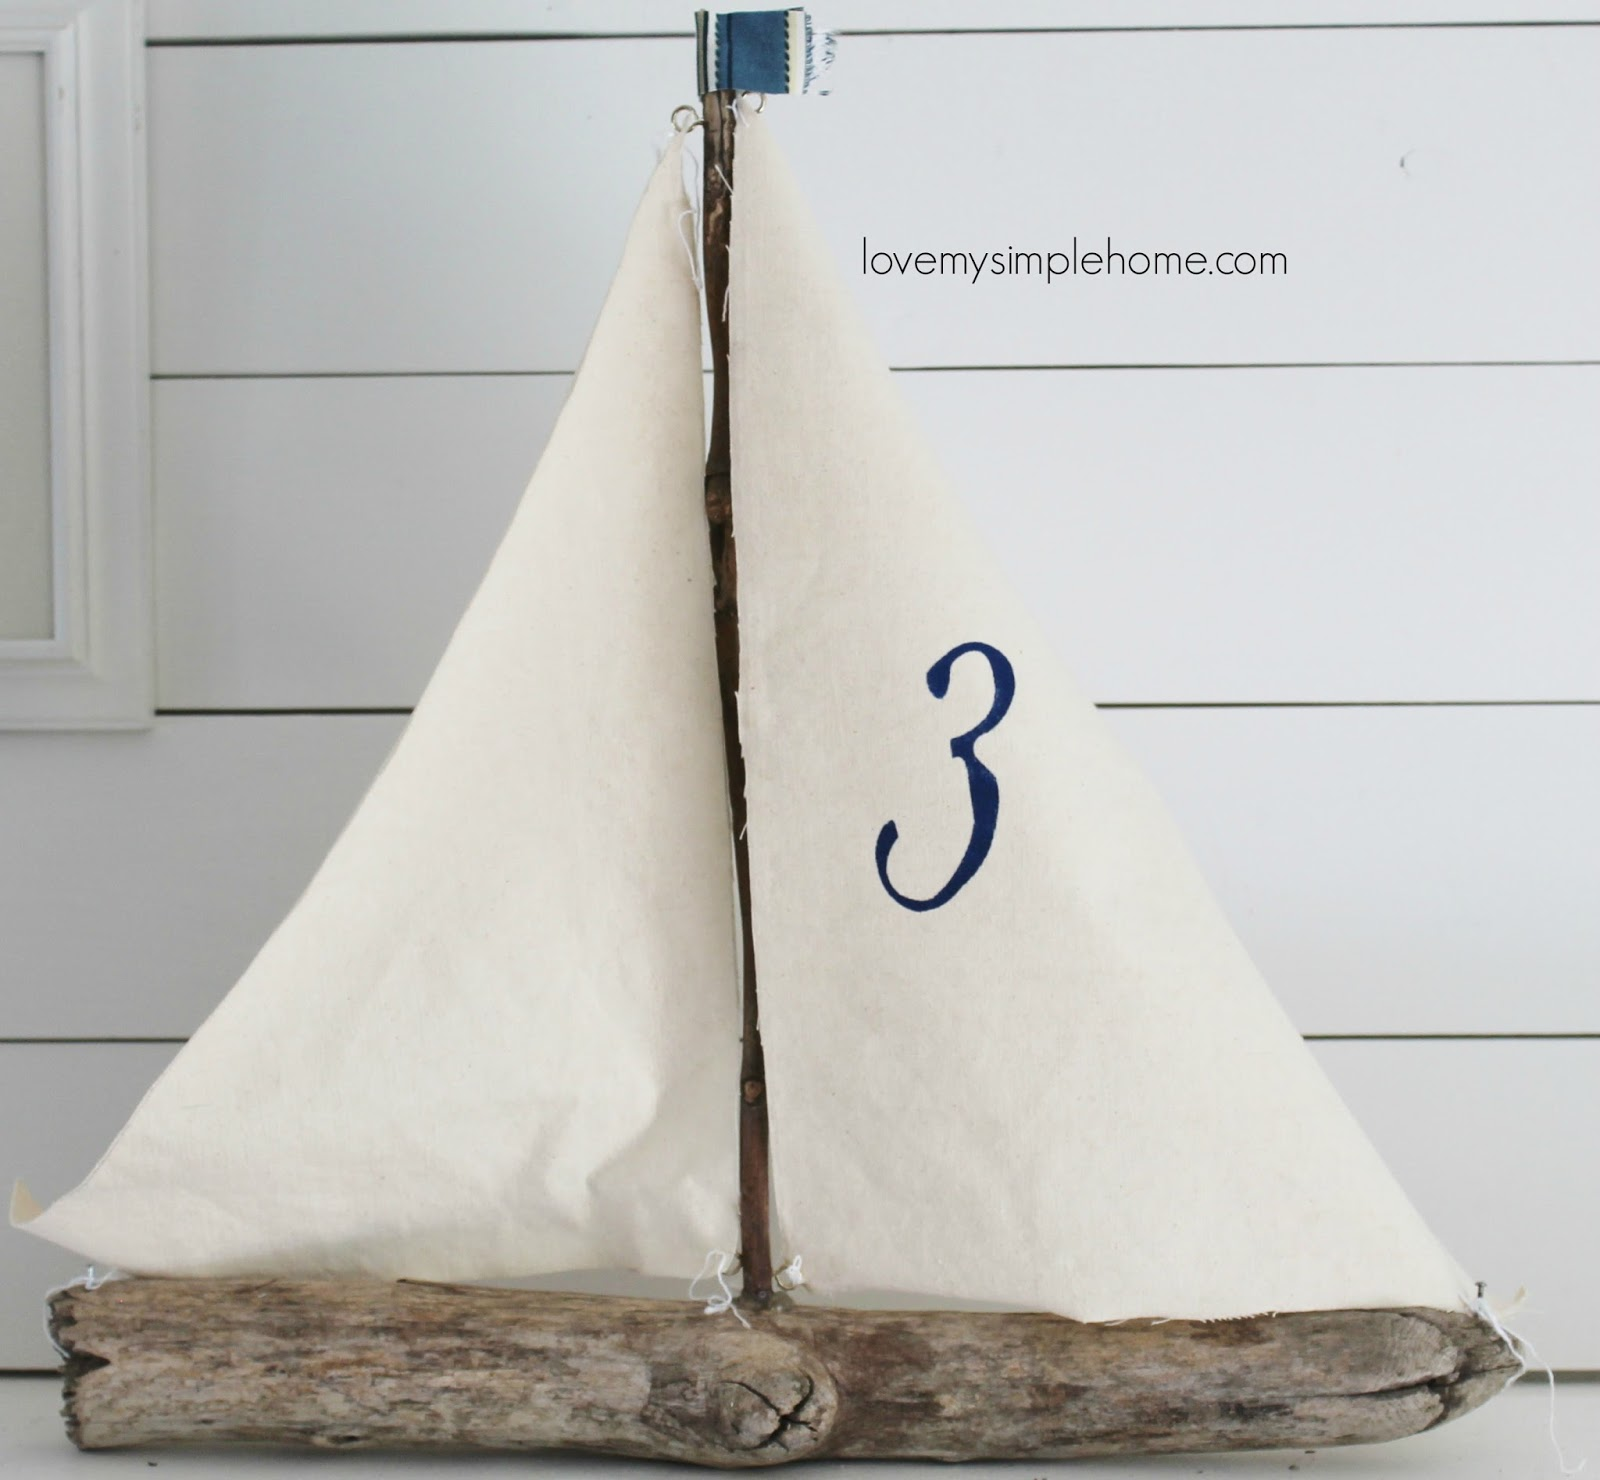 Canvas driftwood sailboat love my simple home for Diy driftwood sailboat